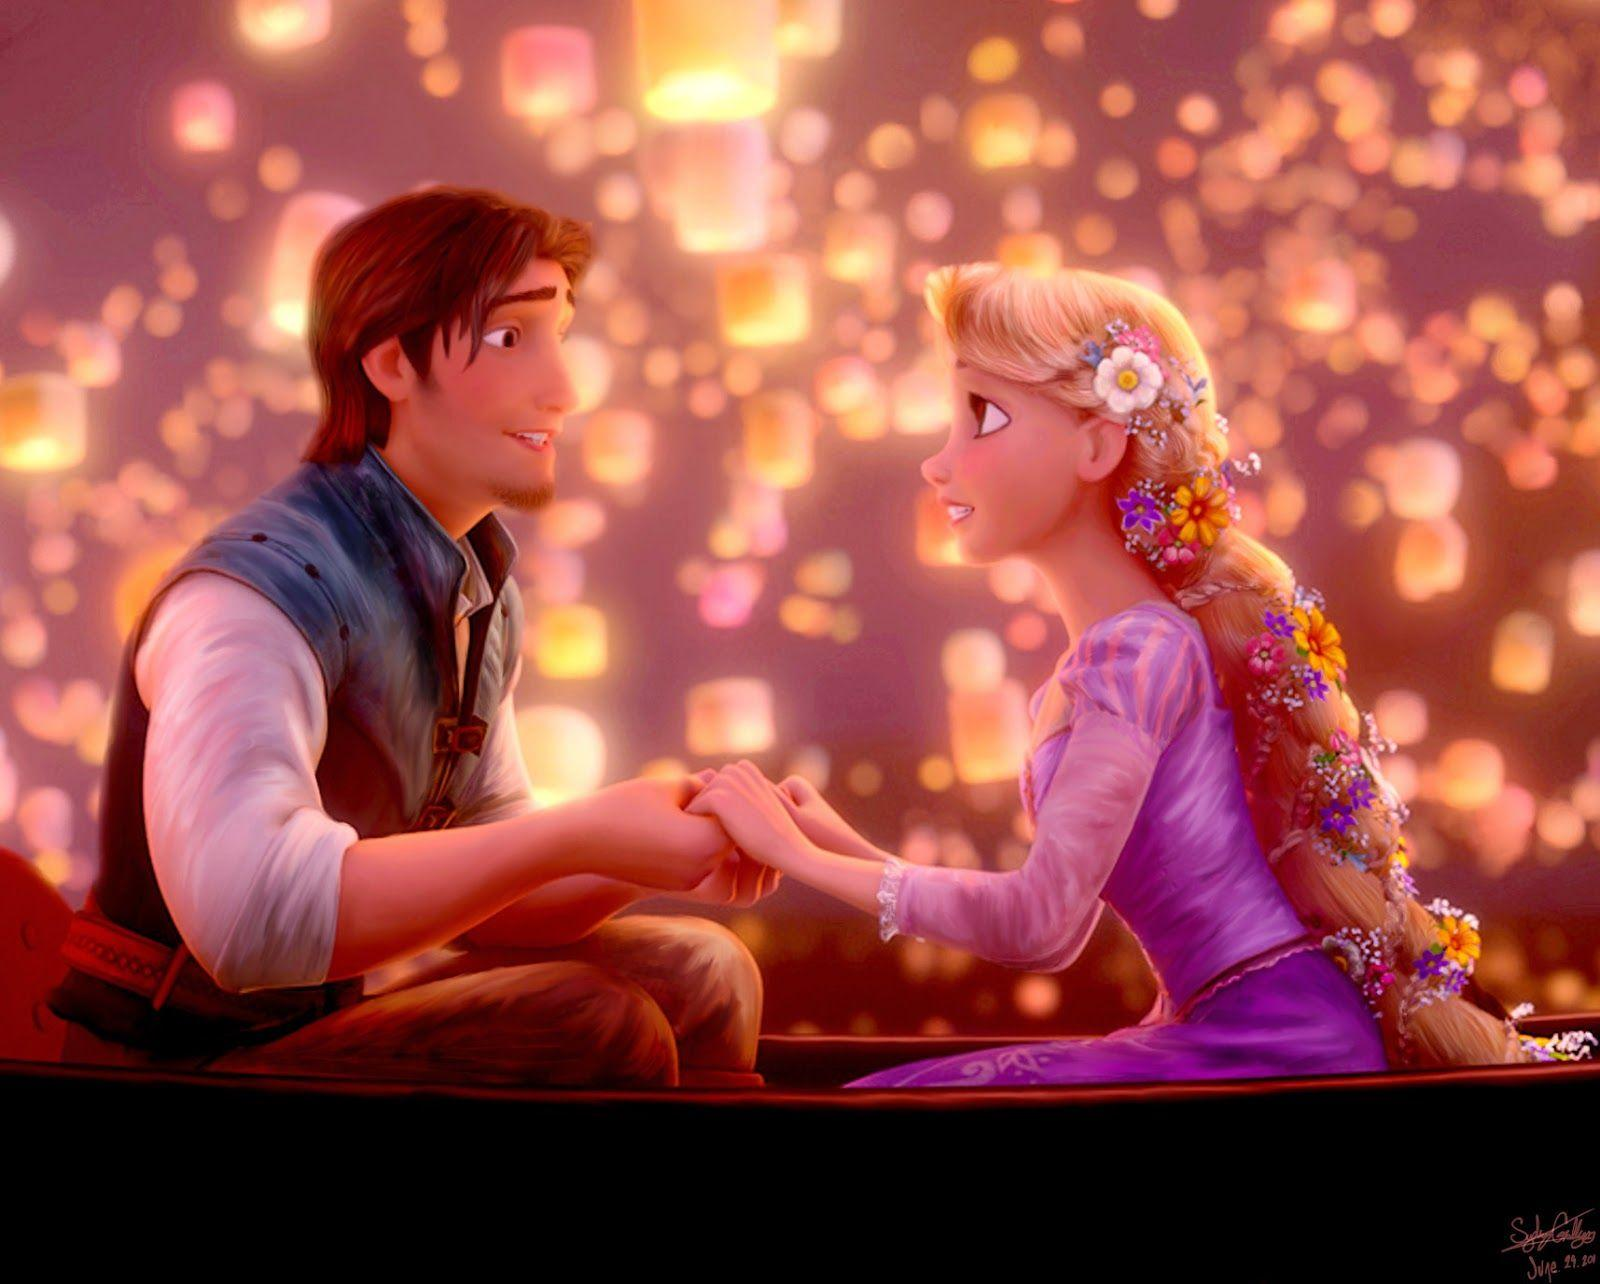 Tangled Lanterns Wallpaper 1600x1000 45